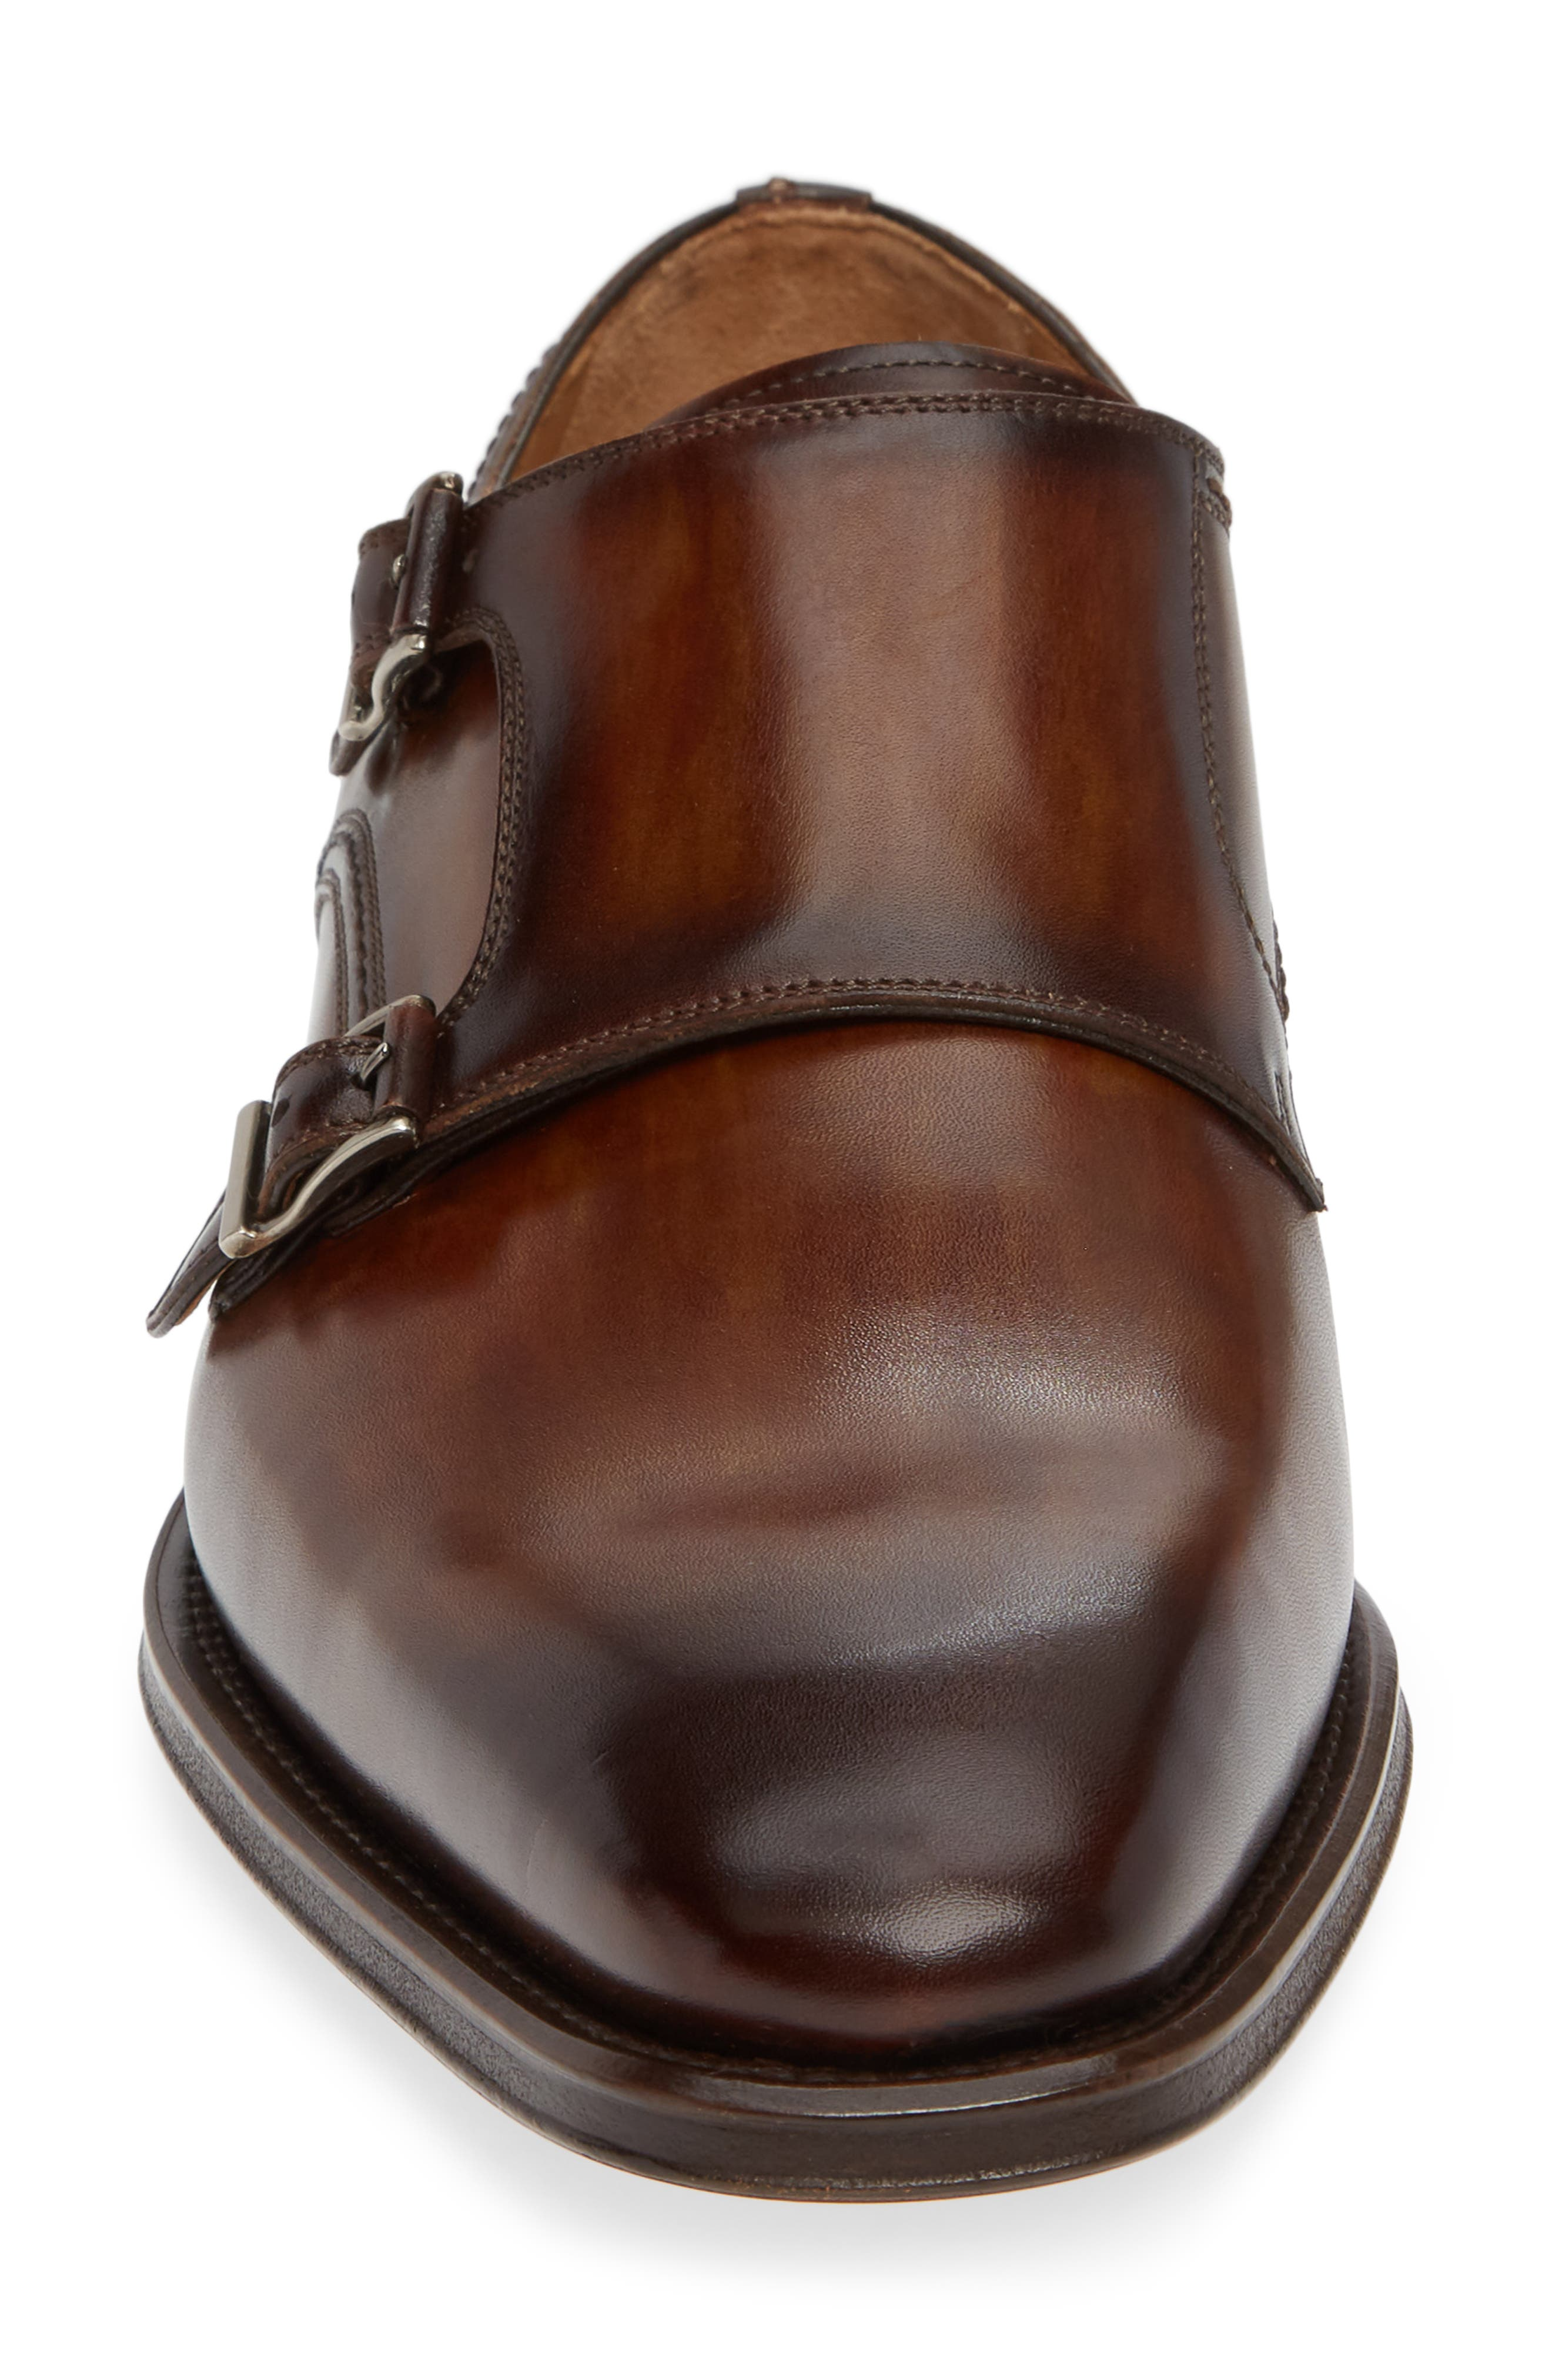 Landon Double Strap Monk Shoe,                             Alternate thumbnail 4, color,                             TOBACCO LEATHER